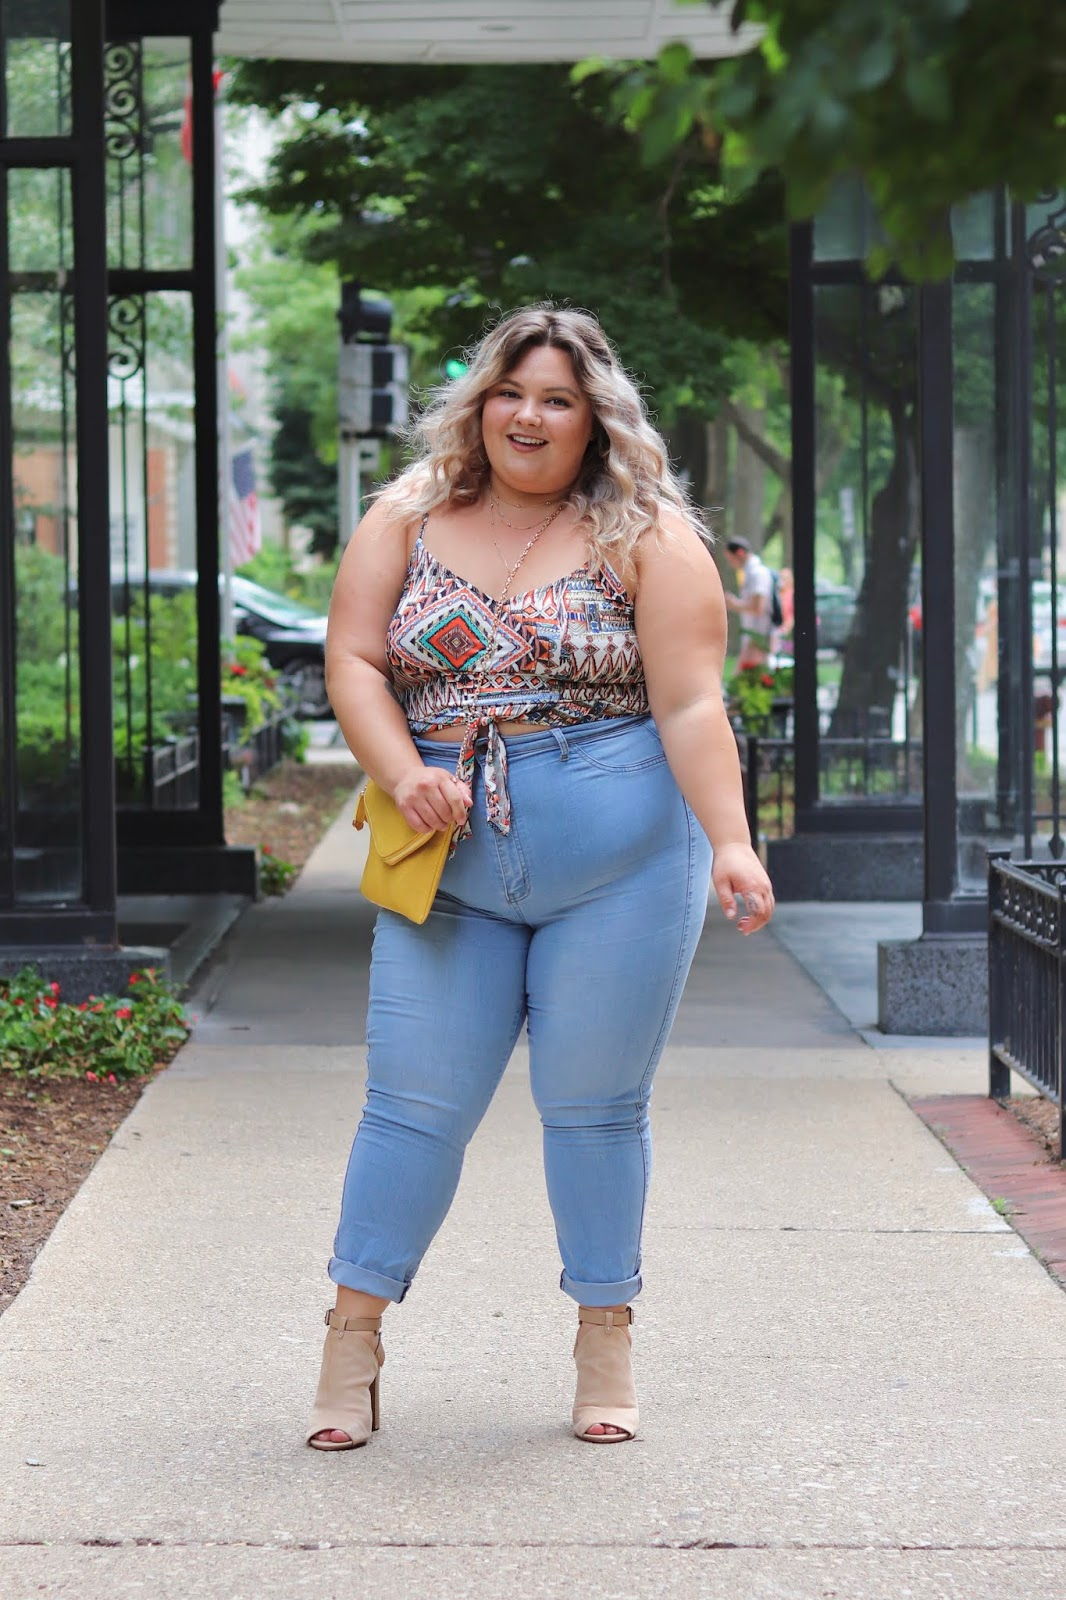 Chicago Plus Size Petite Fashion Blogger, influencer, YouTuber, and model Natalie Craig, of Natalie in the City, rocks crop tops from Gordmans, an off-price retailer, and embraces her insecurities.